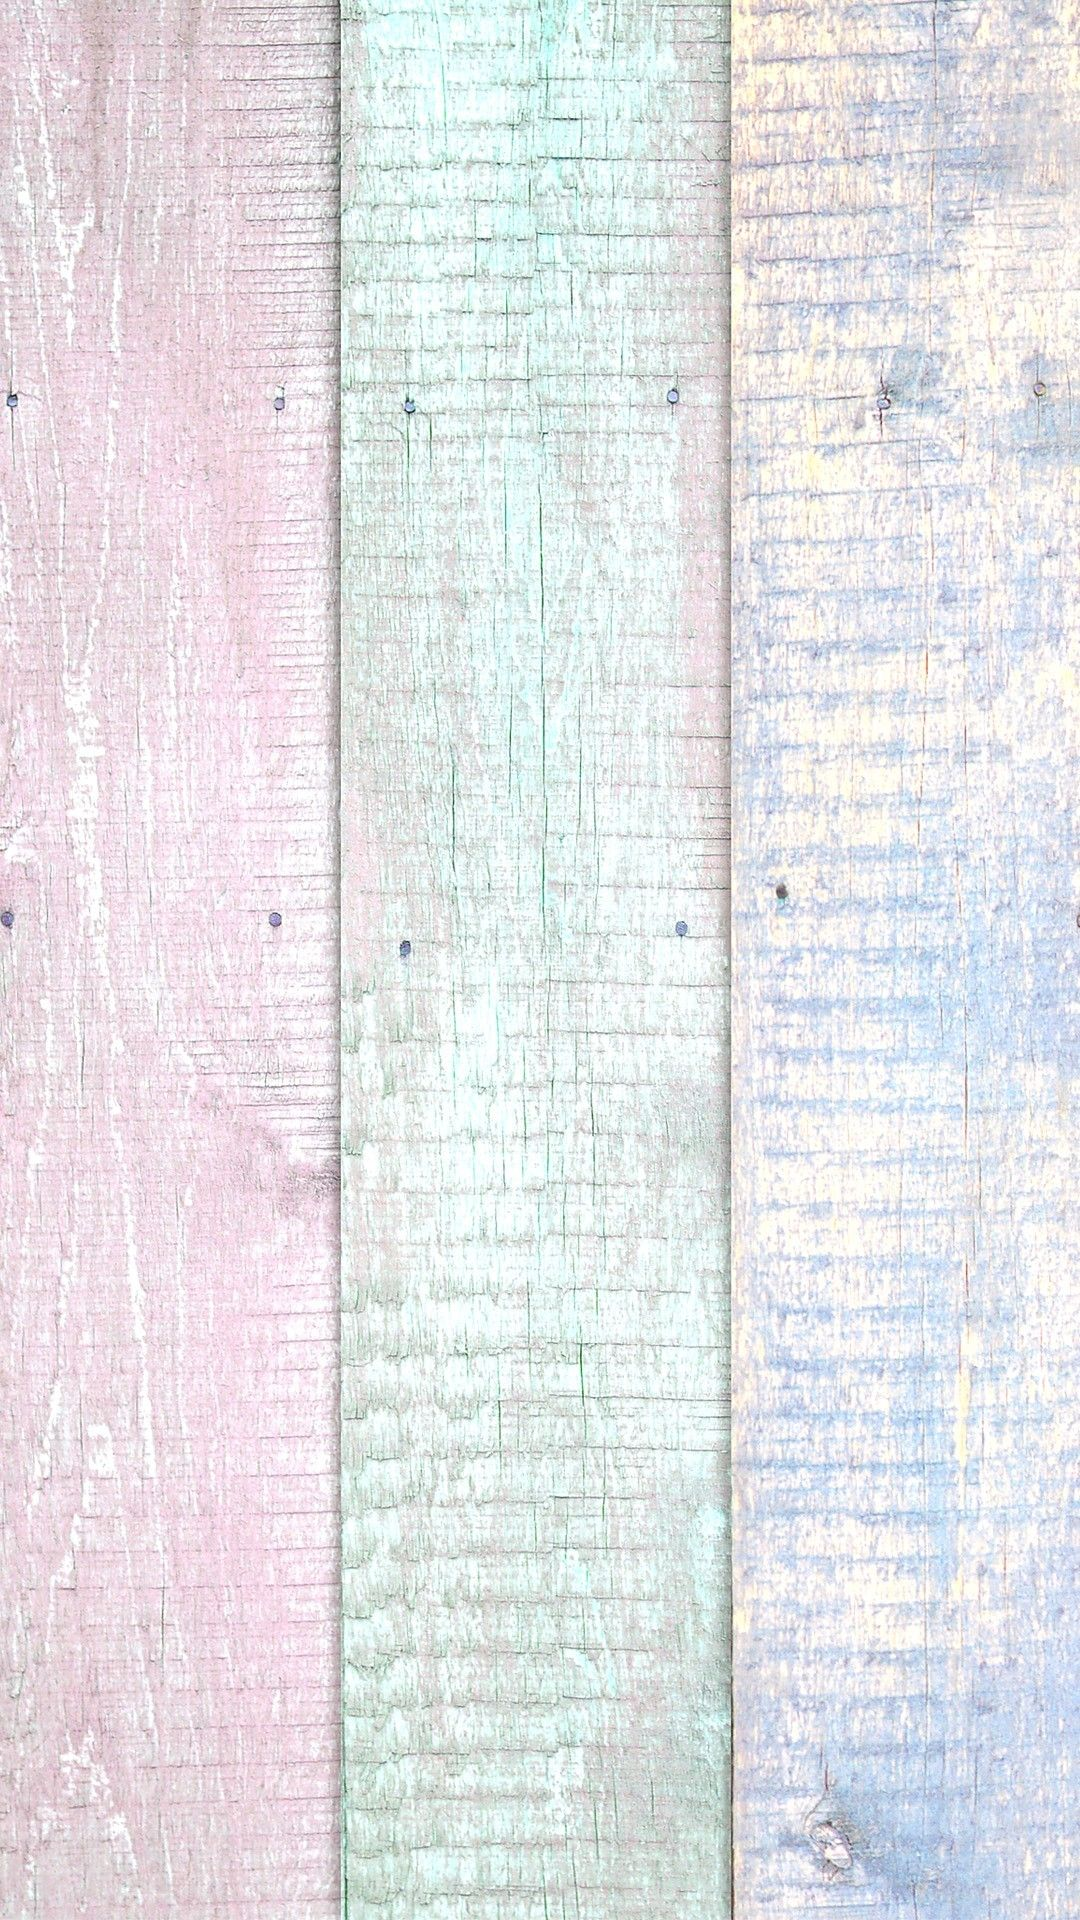 Pin by Parisa Babooei on Design Pastel background